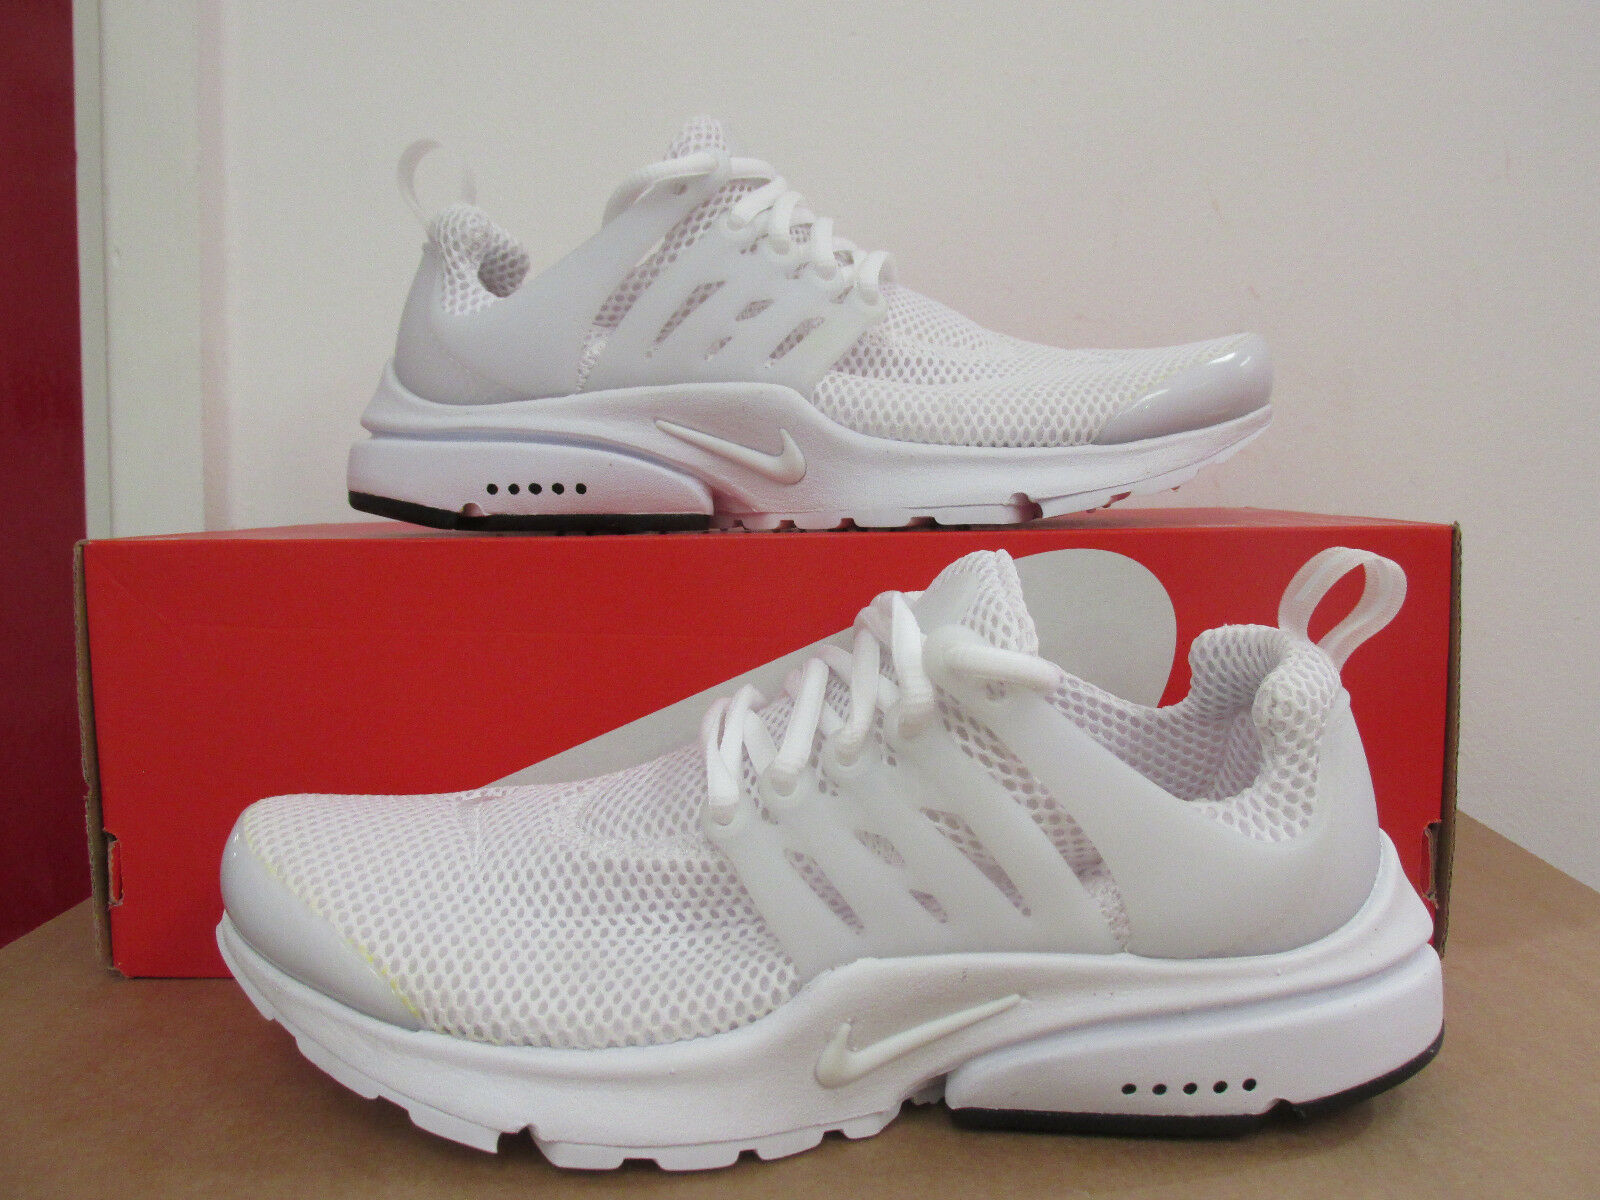 nike air presto mens running trainers 848132 100 sneakers shoes CLEARANCE